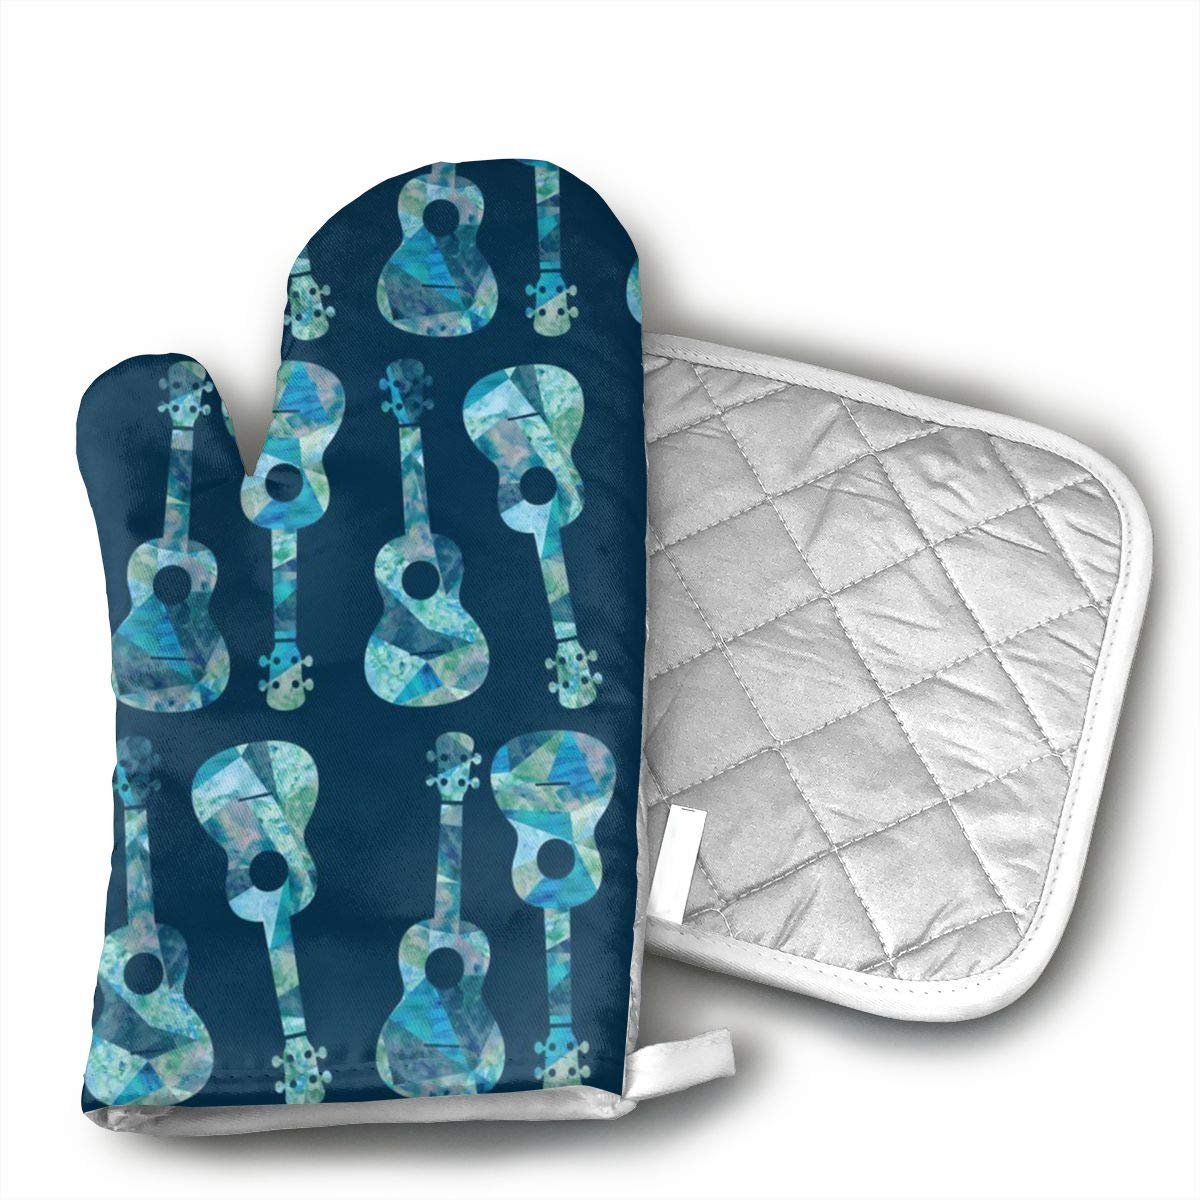 Wiqo9 Ukulele Watercolor Oven Mitts and Pot Holders Kitchen Mitten Cooking Gloves,Cooking, Baking, BBQ.